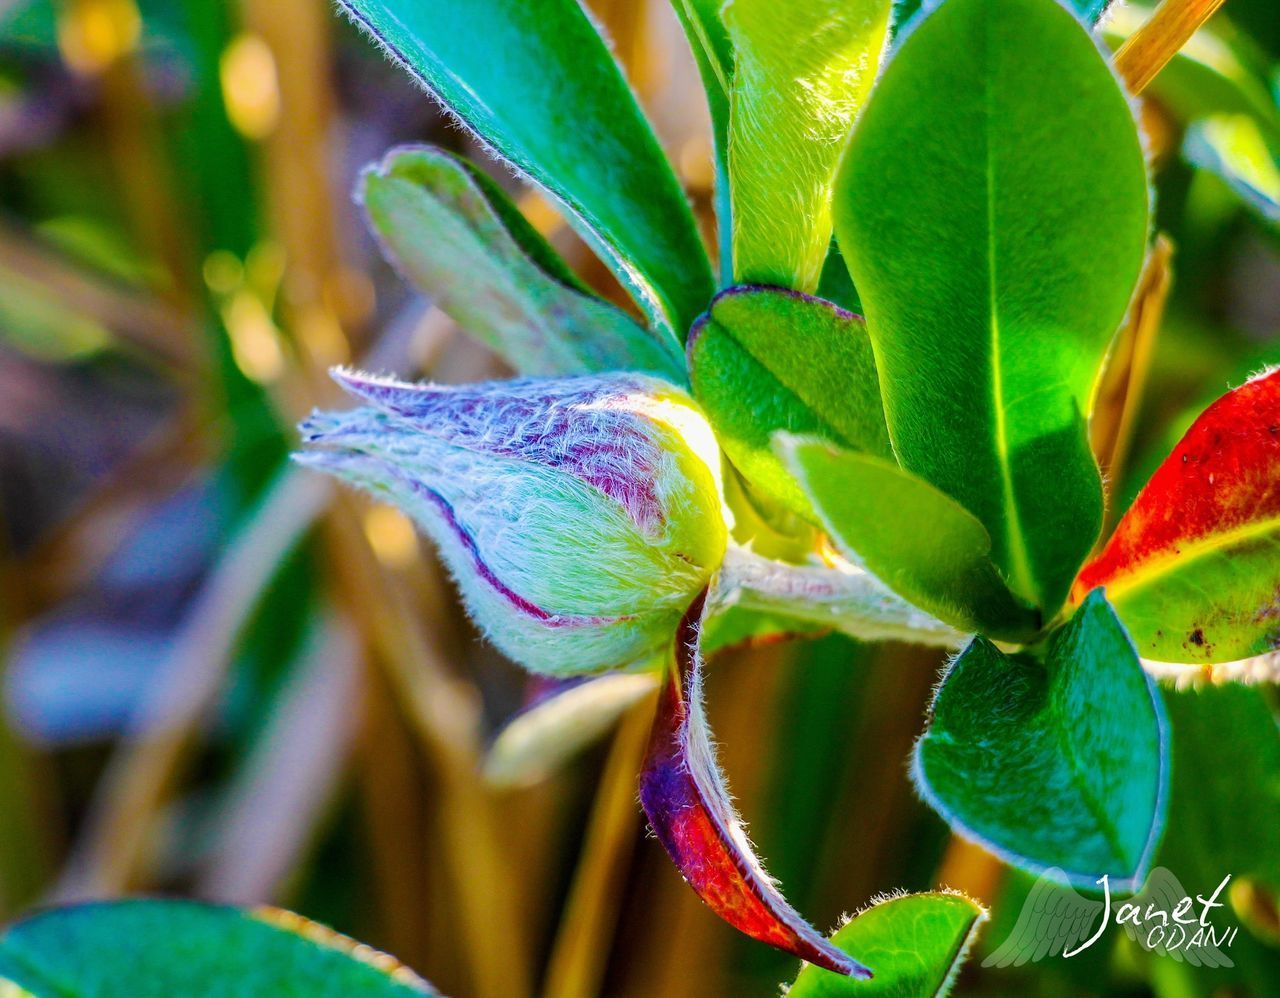 leaf, plant part, growth, plant, close-up, beauty in nature, green color, no people, focus on foreground, nature, freshness, day, flower, flowering plant, selective focus, outdoors, vulnerability, fragility, sunlight, botany, flower head